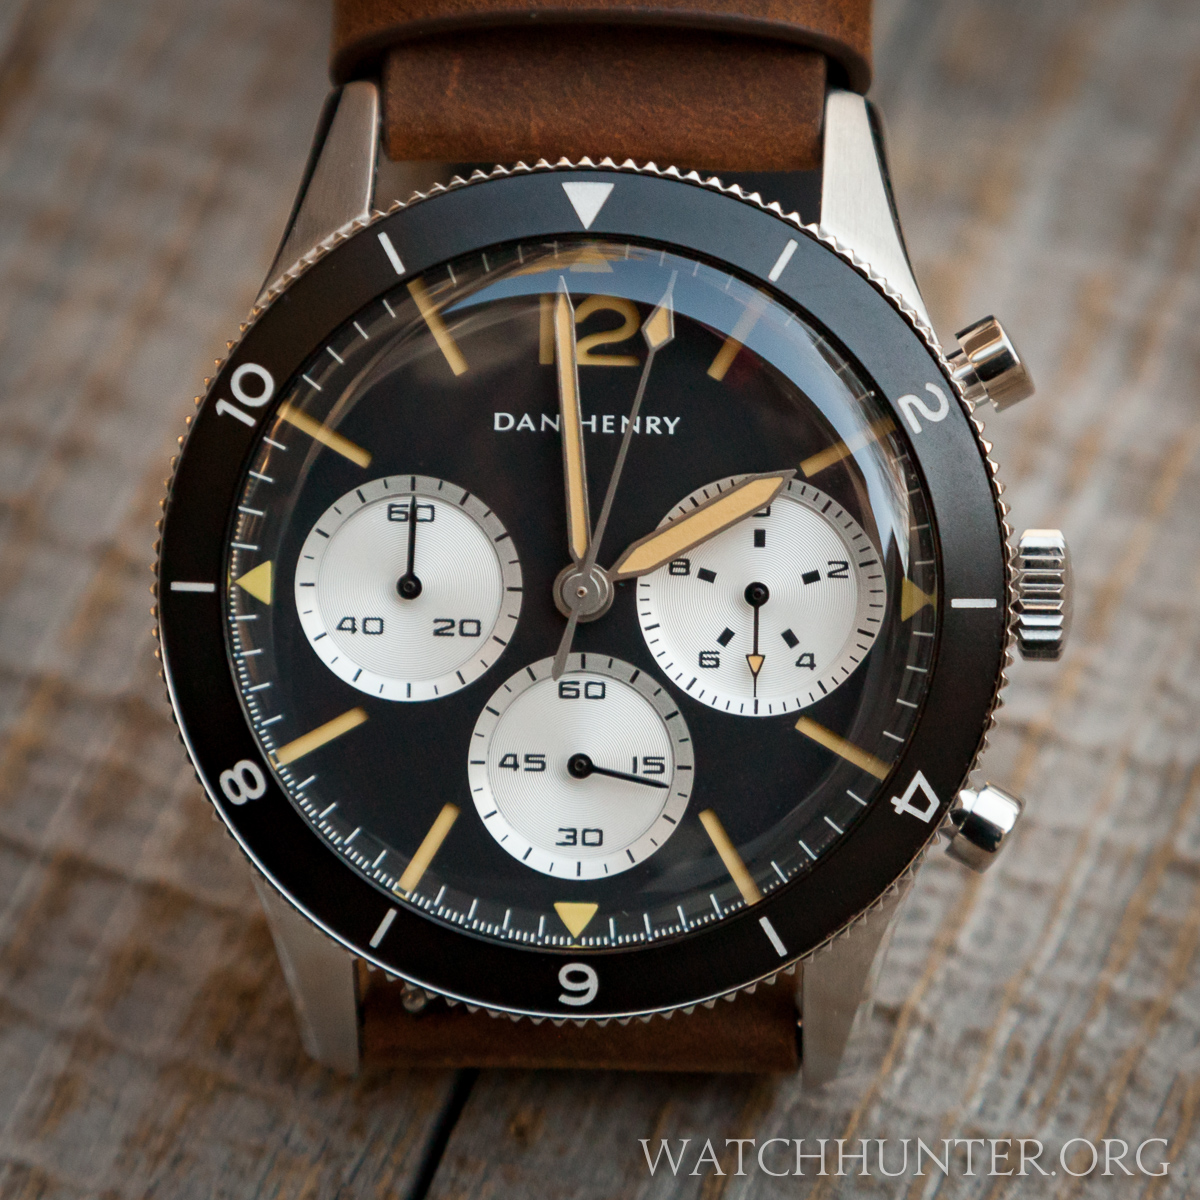 chronograph watch archives - watch hunter - watch reviews, photos